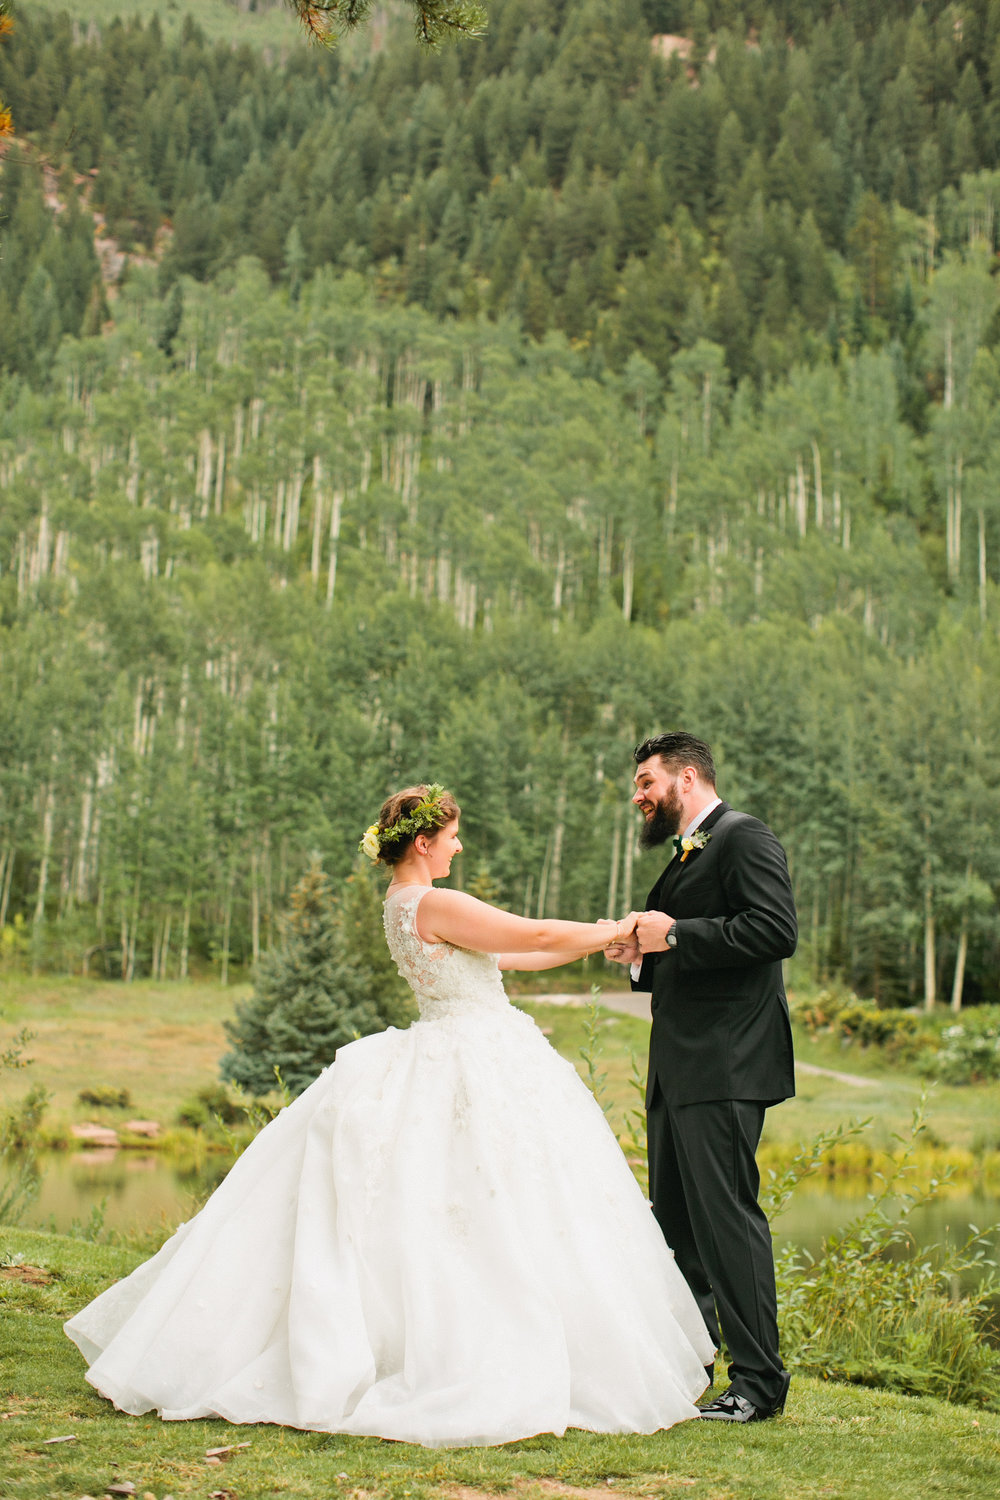 Amelia Sutton a fine art  wedding photographer  specializing in  Colorado  mountaintop weddings and destination weddings around the globe